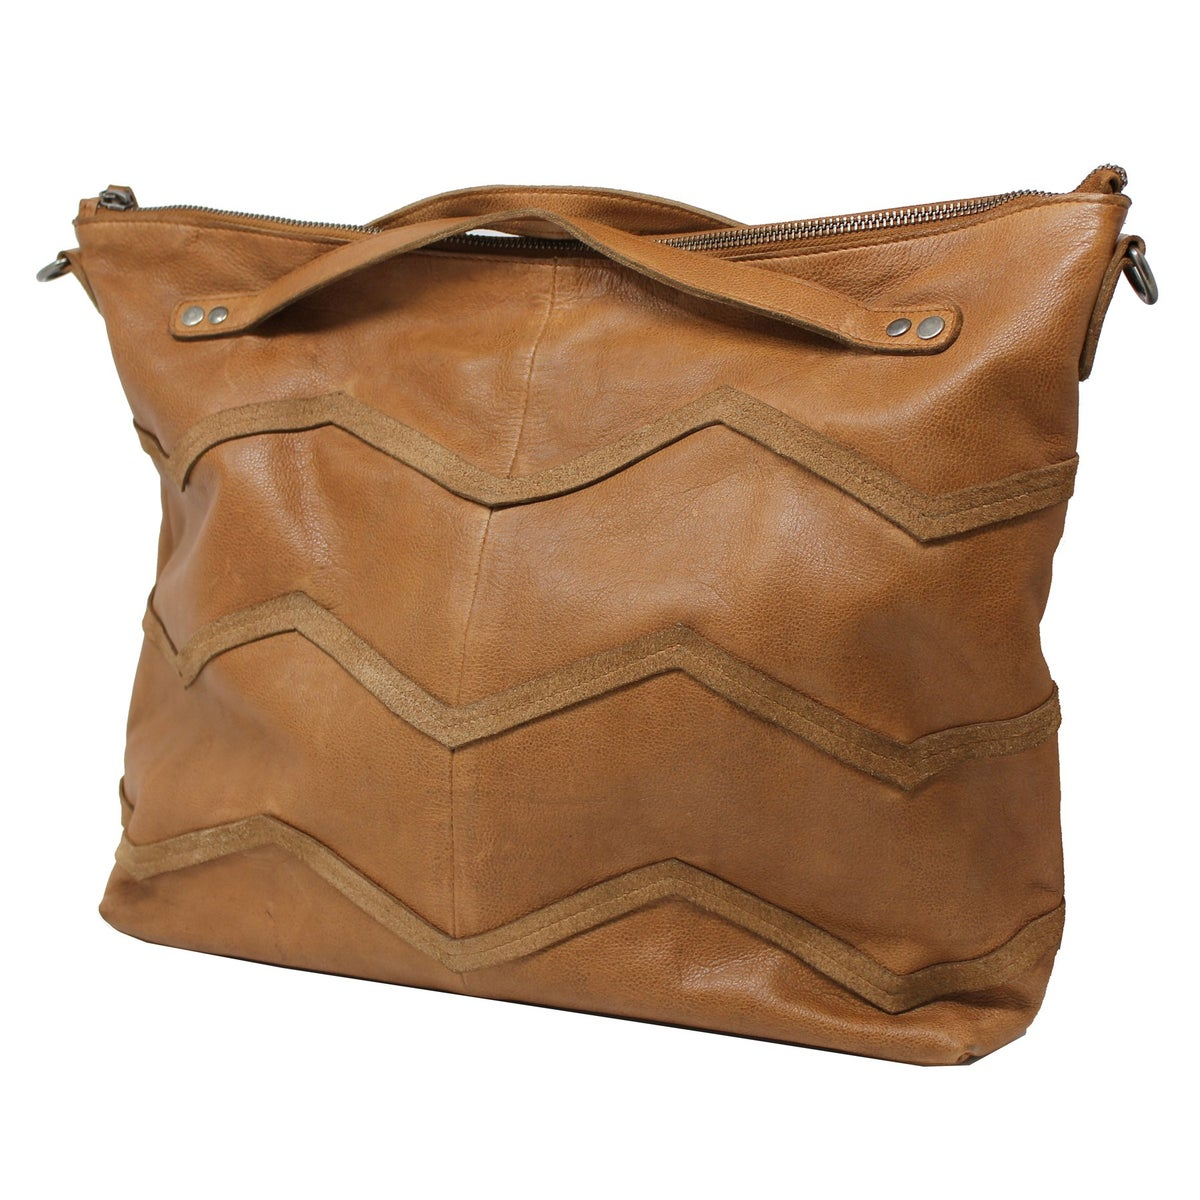 Image of Hope Leather Tote - Cognac